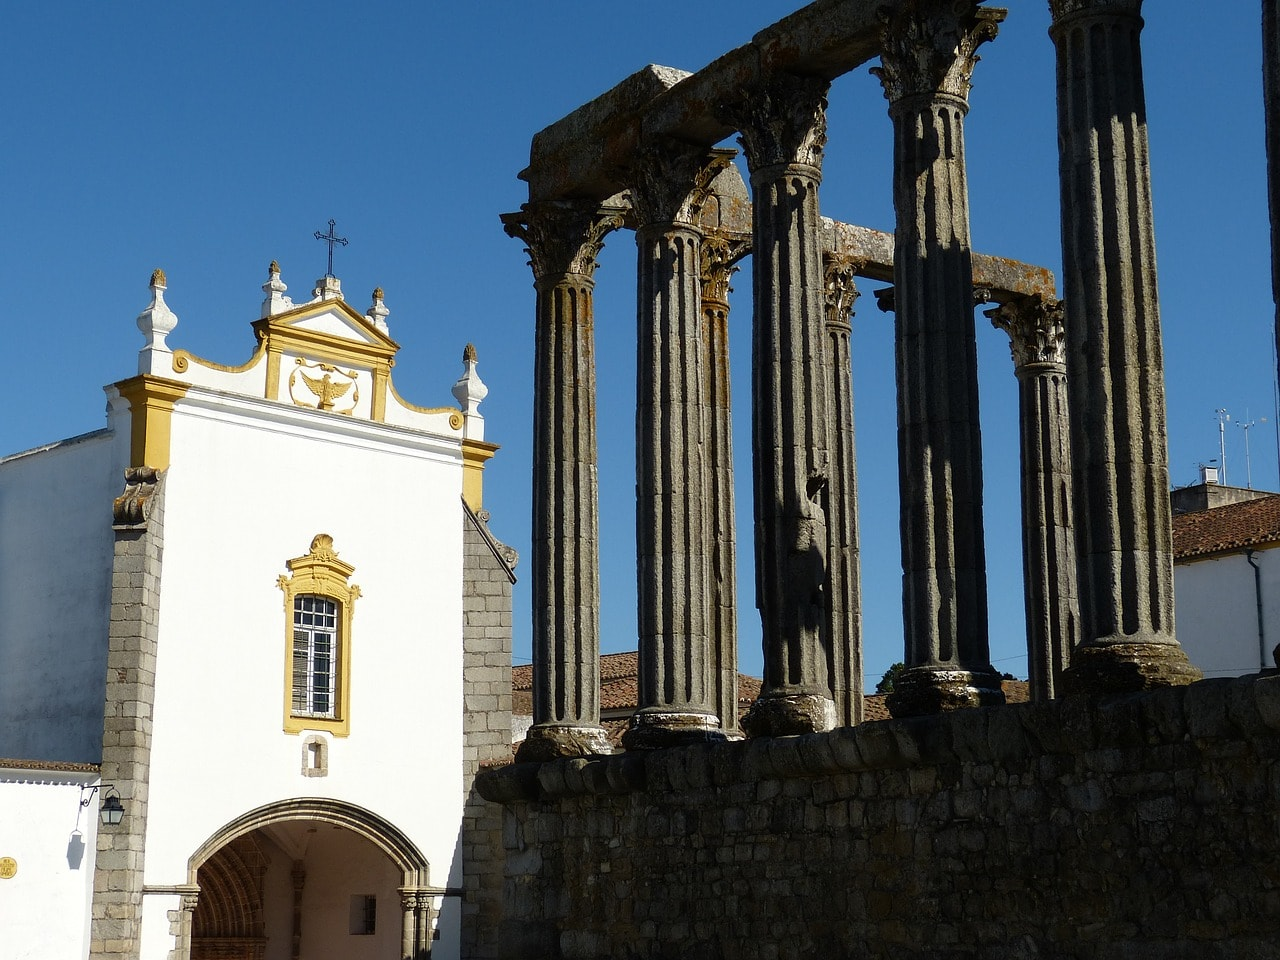 https://pixabay.com/en/evora-portugal-old-town-temple-226068/